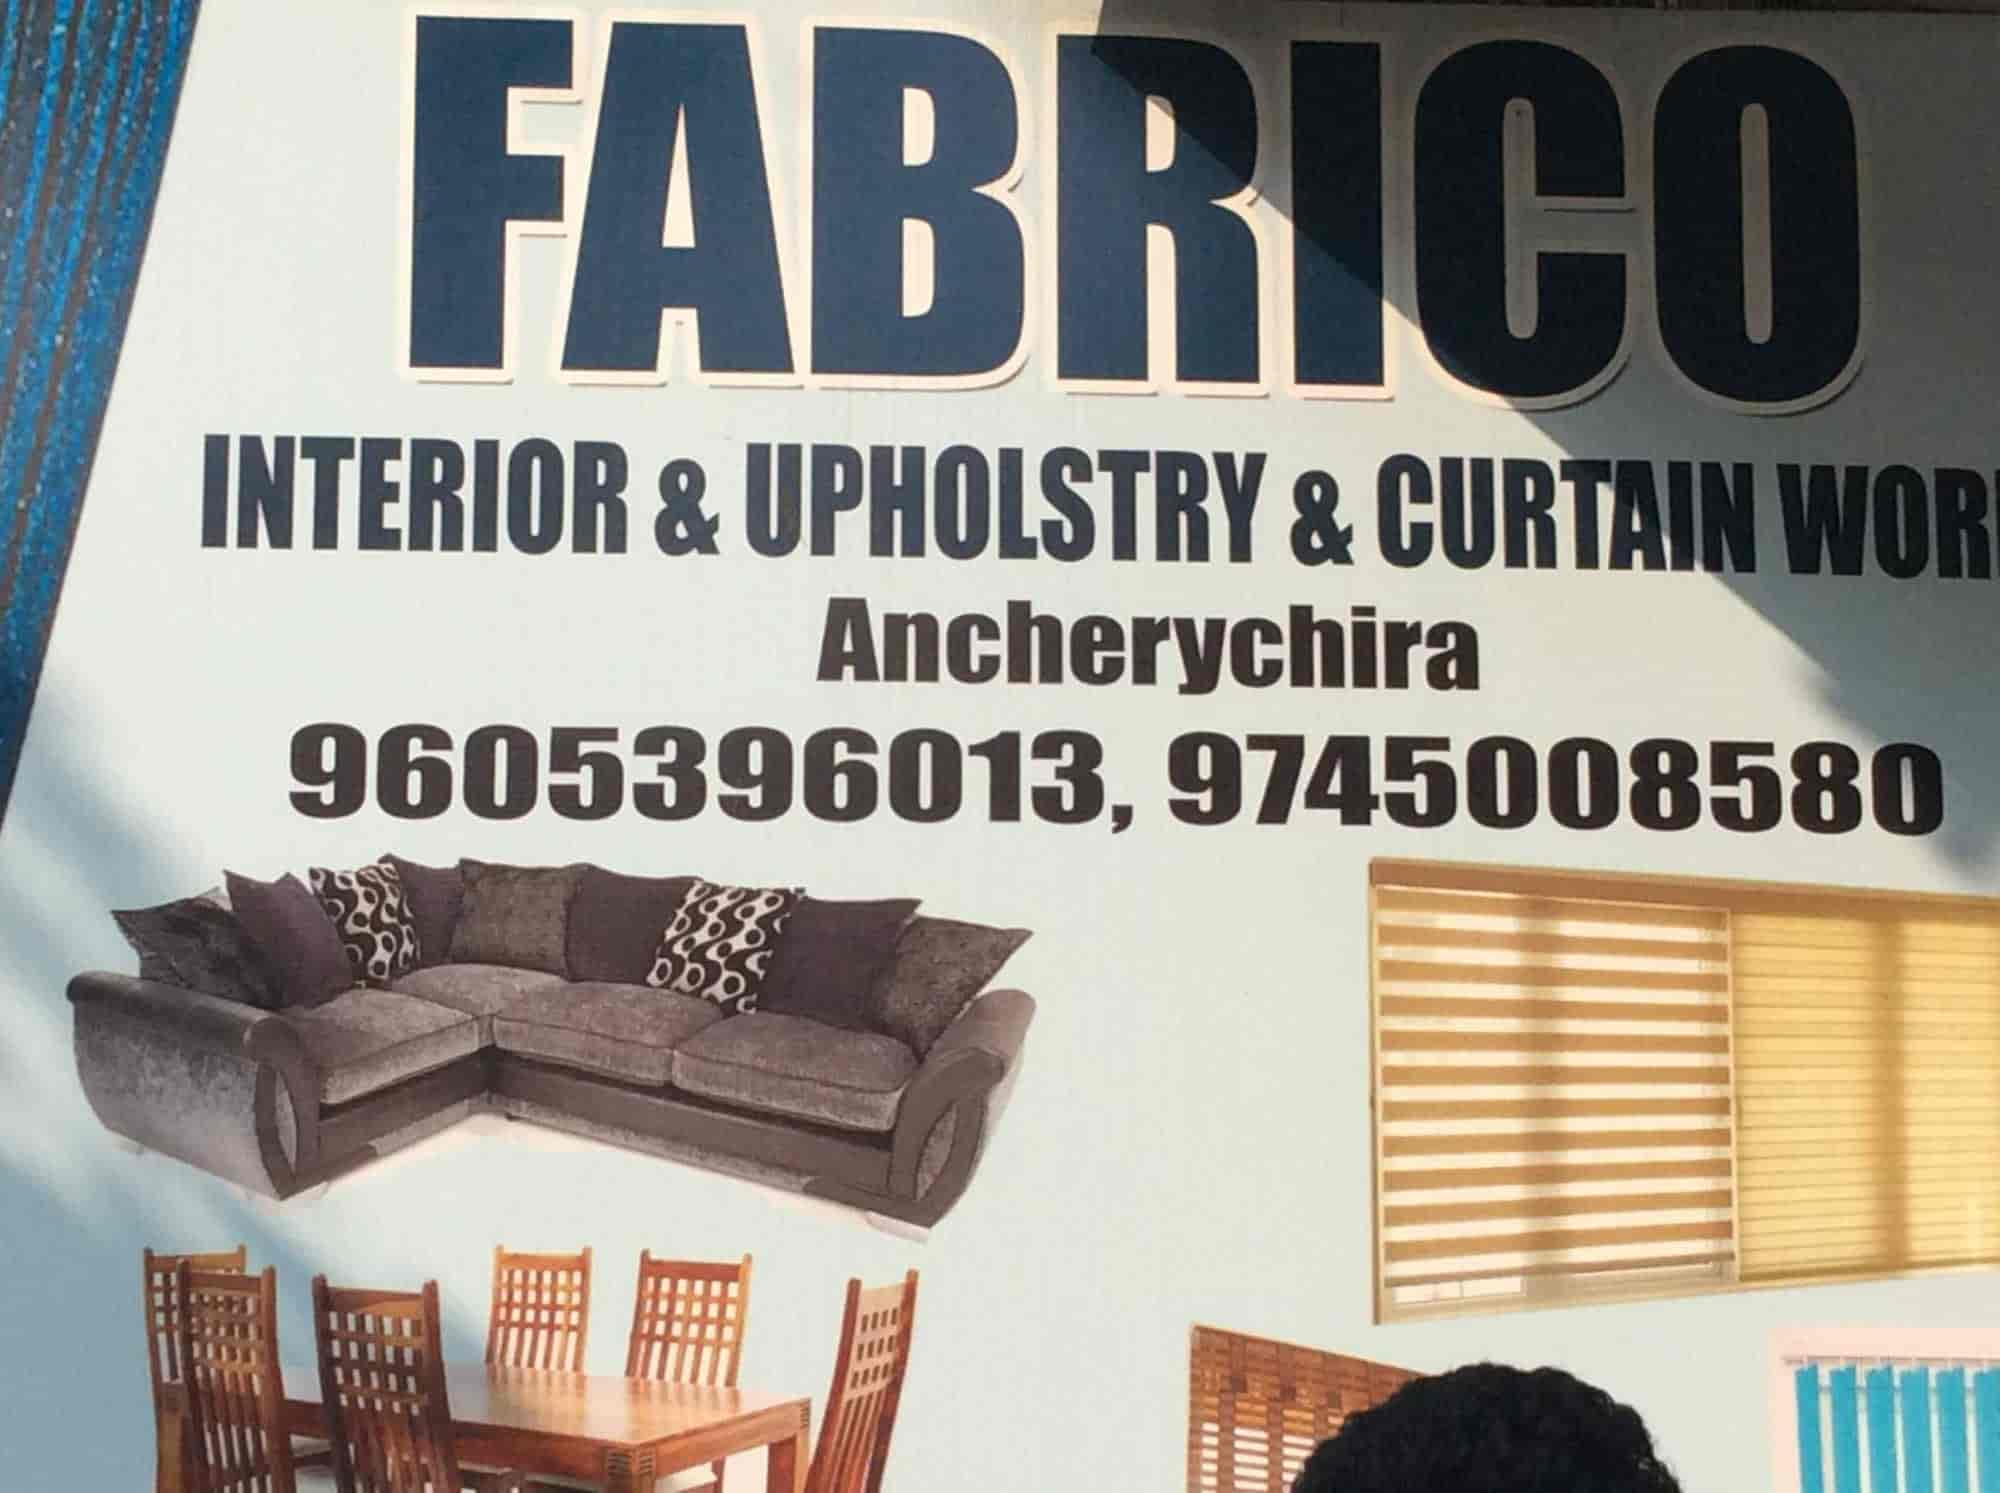 Sofa Upholstery Thrissur Fabrico Interior Upholstery Work Thrissur East Cushion Cover